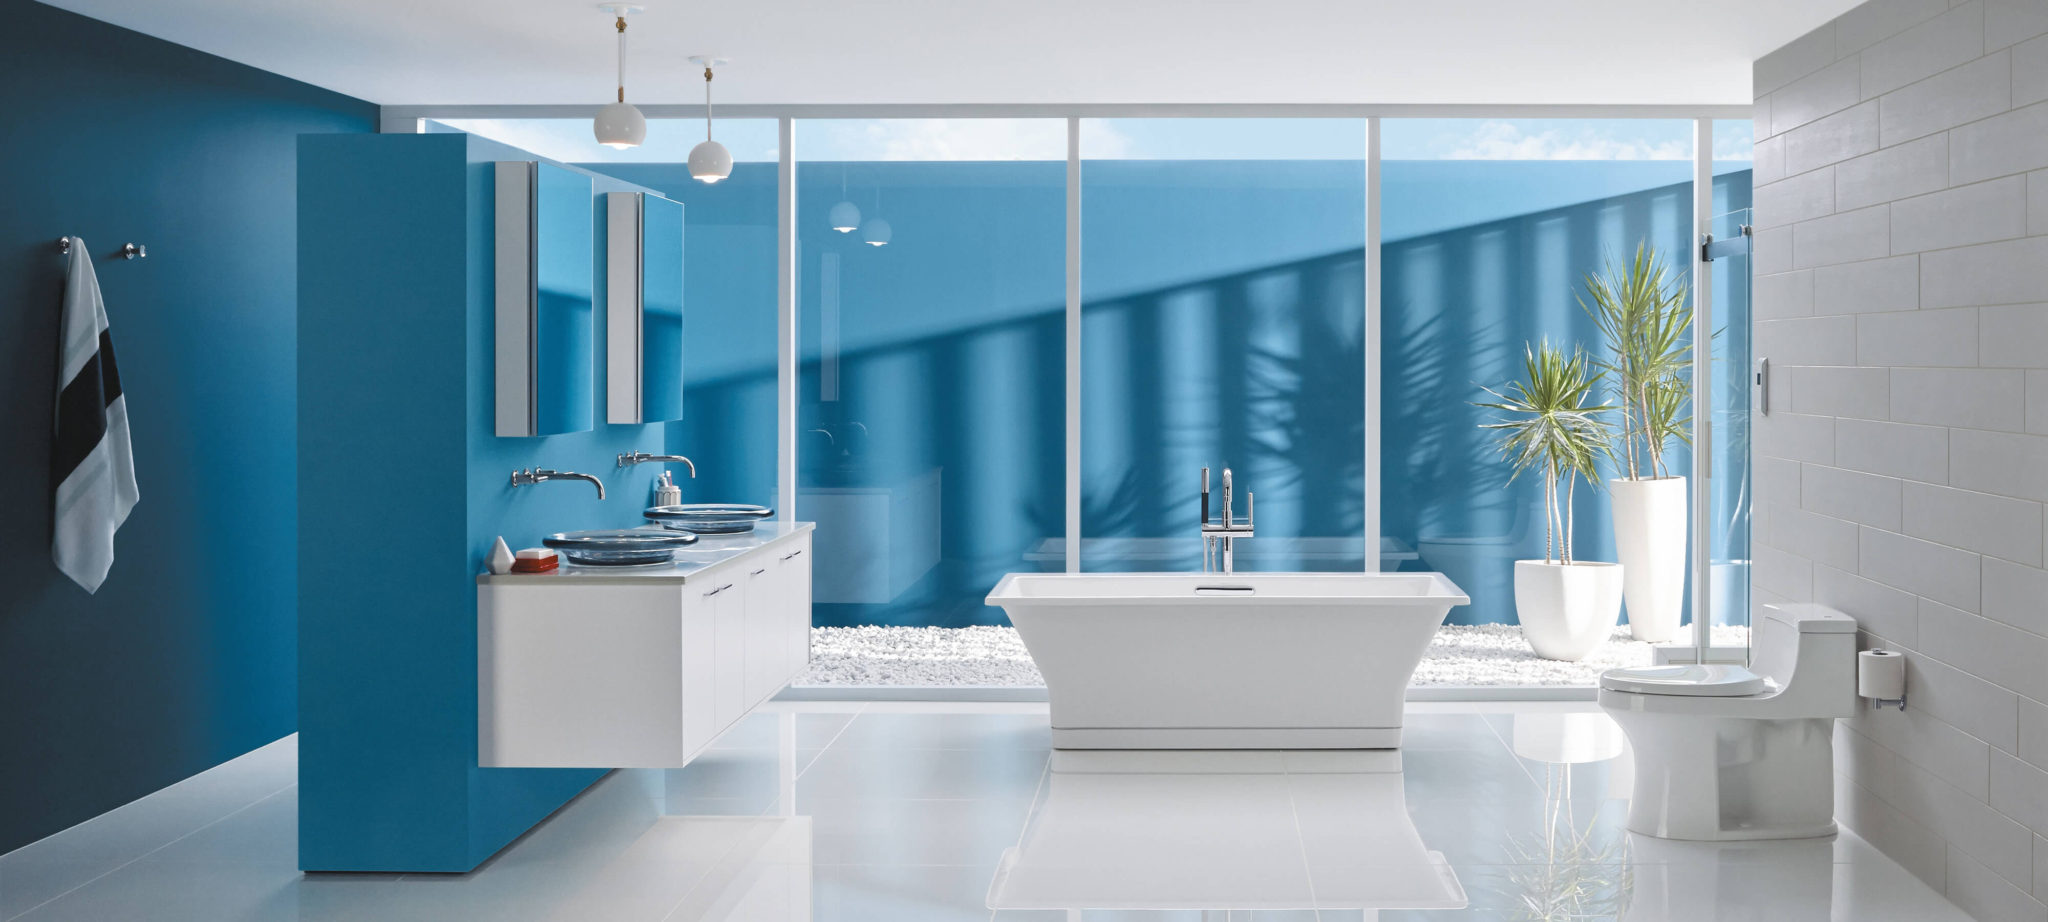 Kohler Blue Bathroom